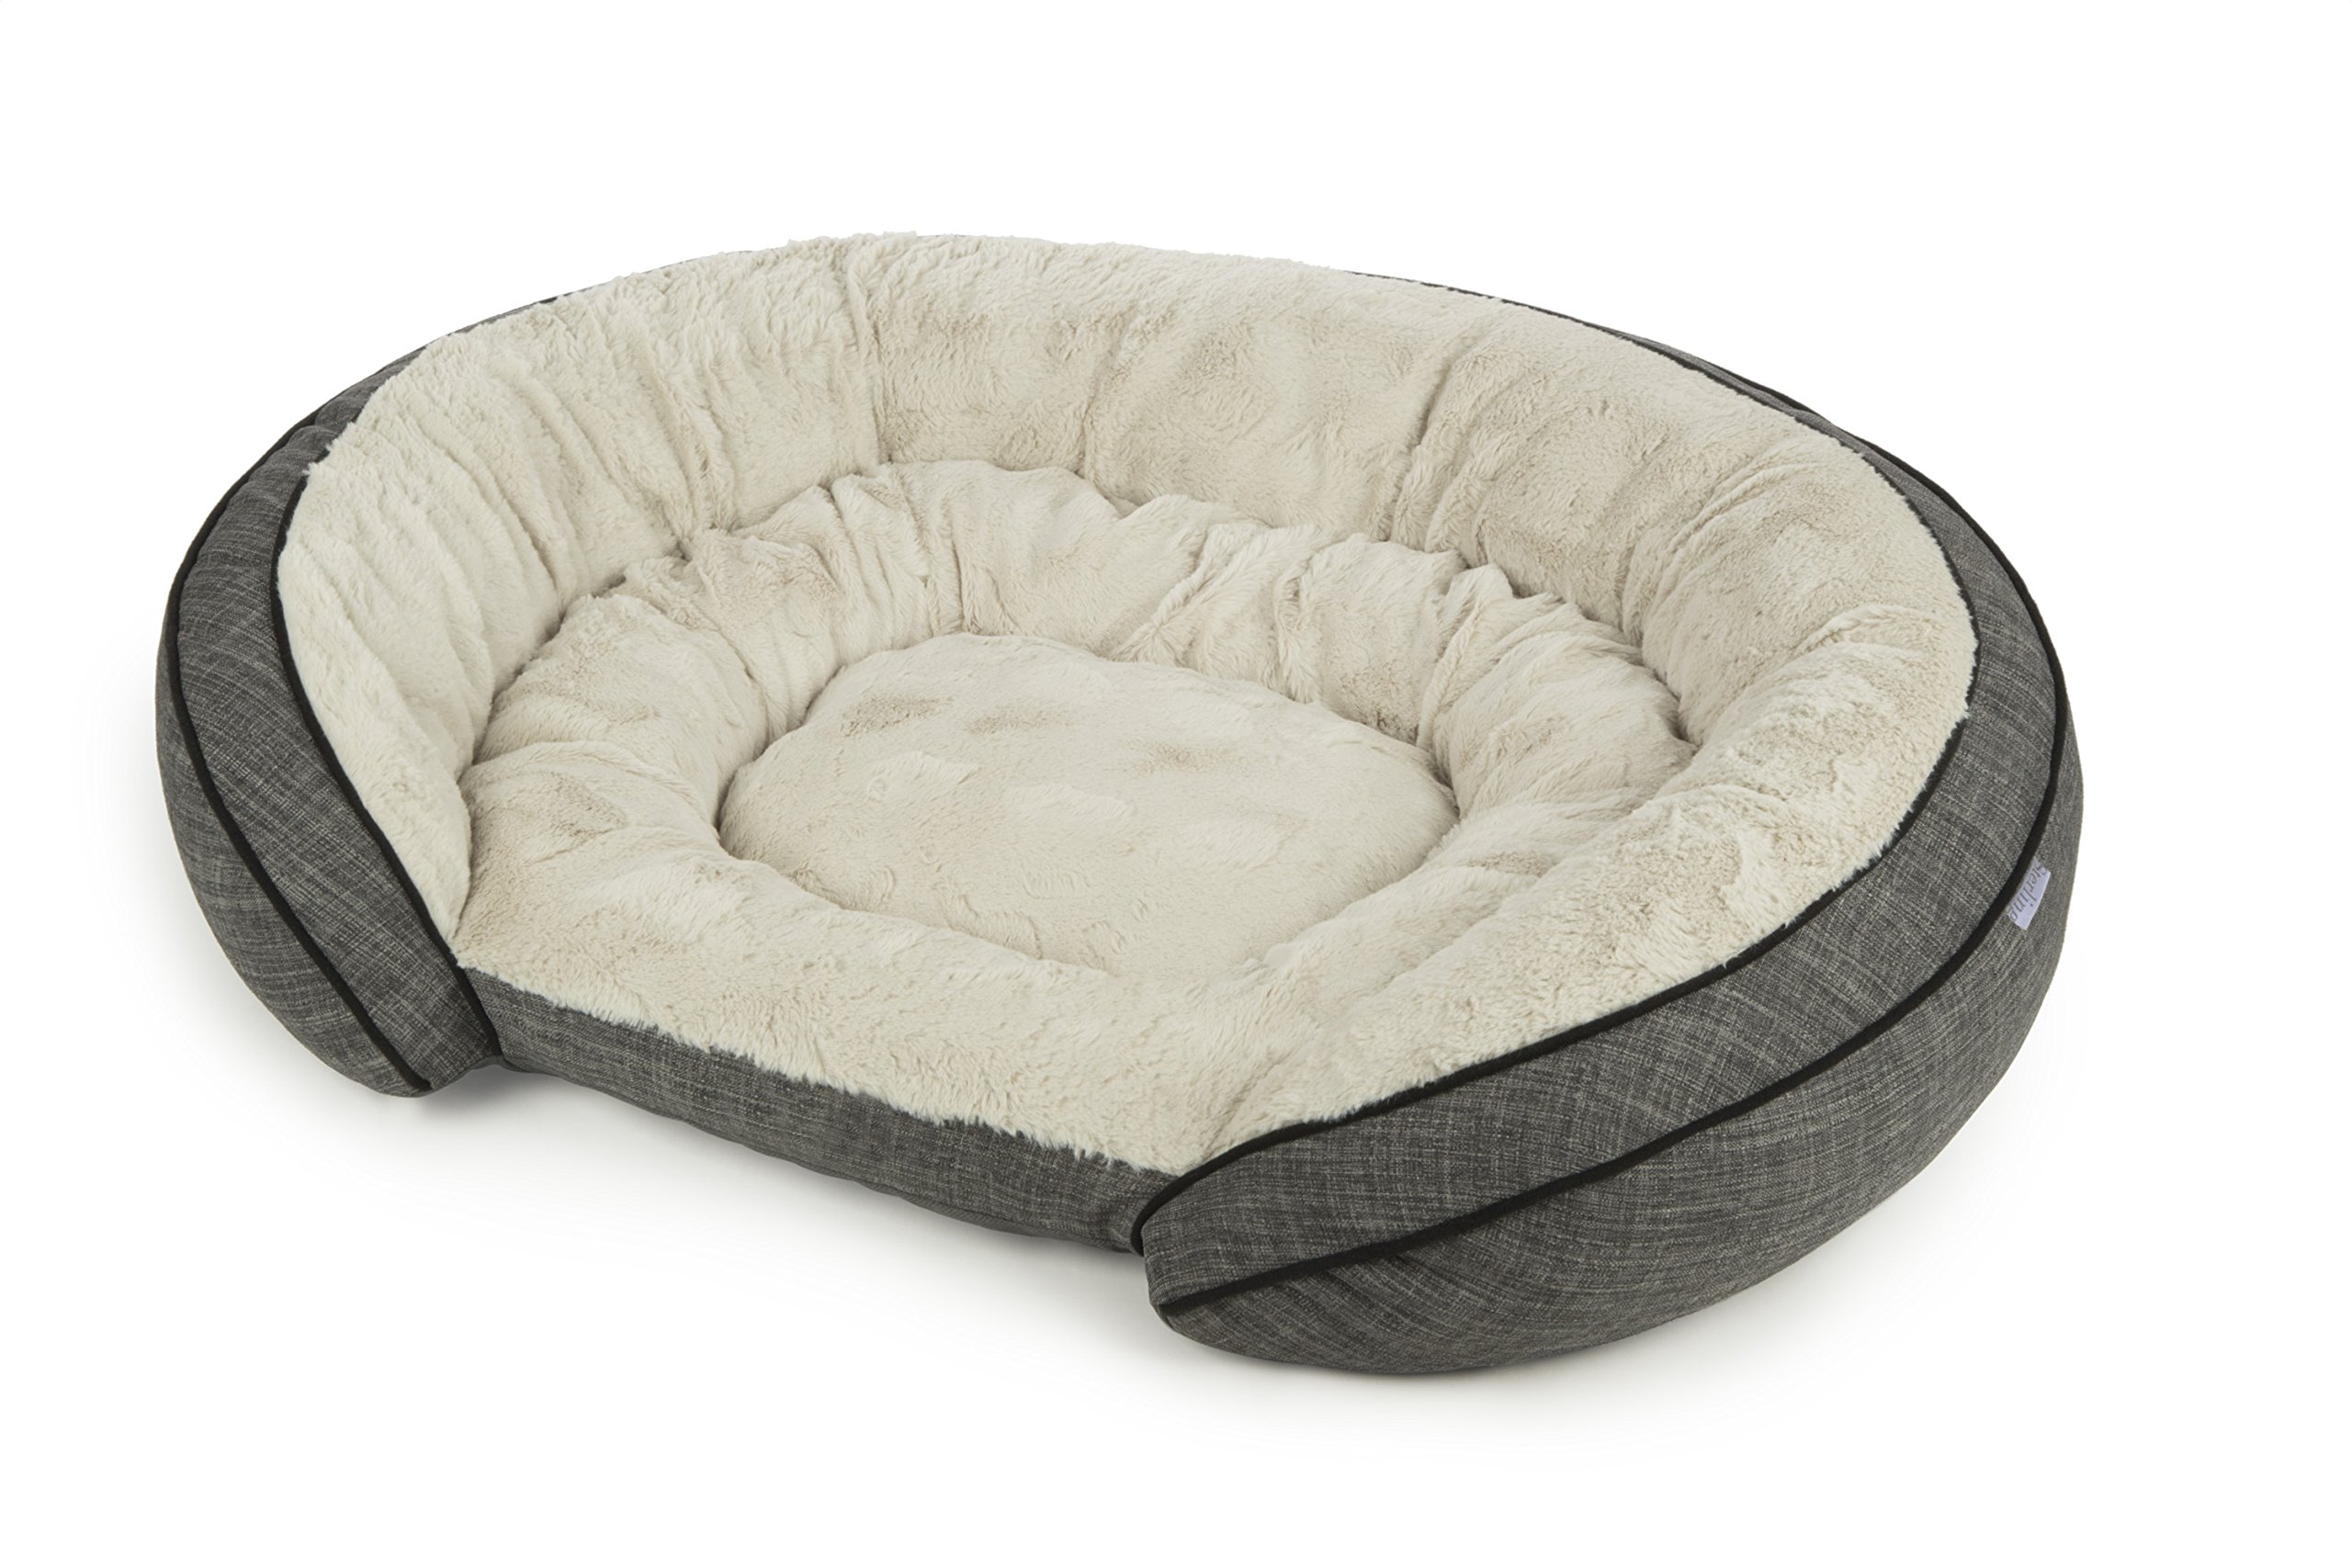 Sterling Premium Cooling Gel Memory Foam Pet Bed, Plush with Woven Linen, Gray